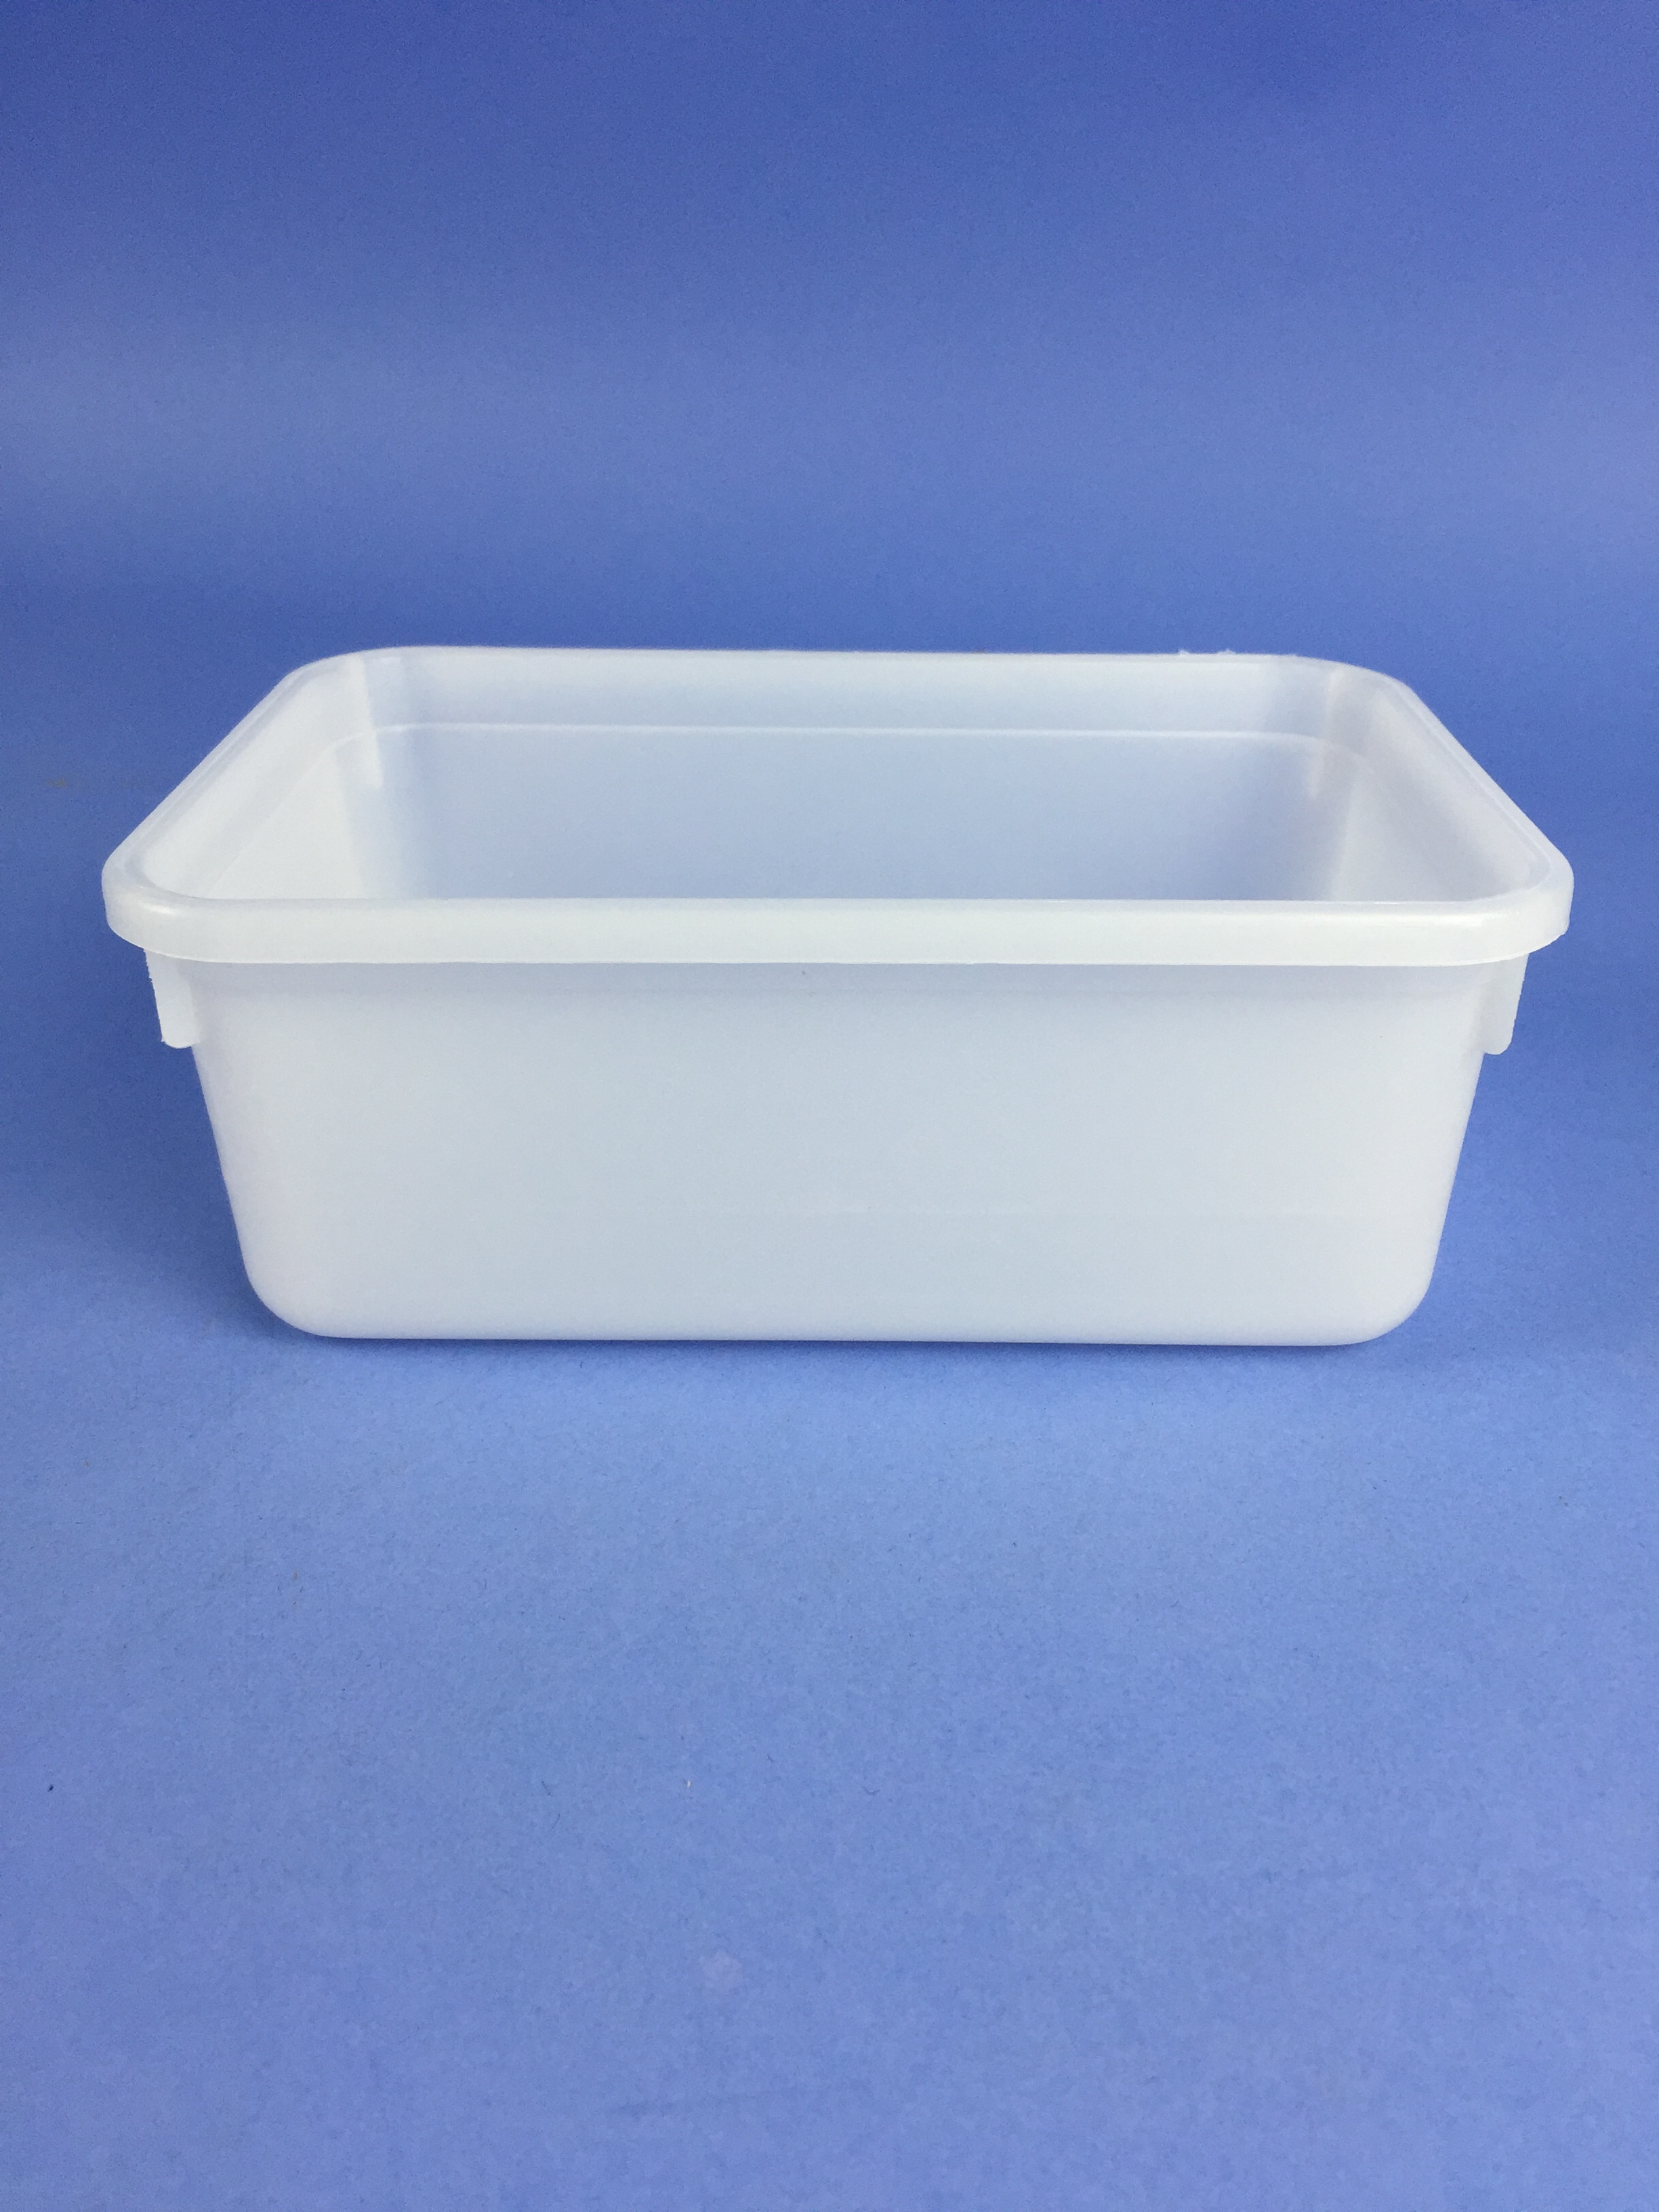 Pc1r 1 Litre Icecream Container Bristol Plastics